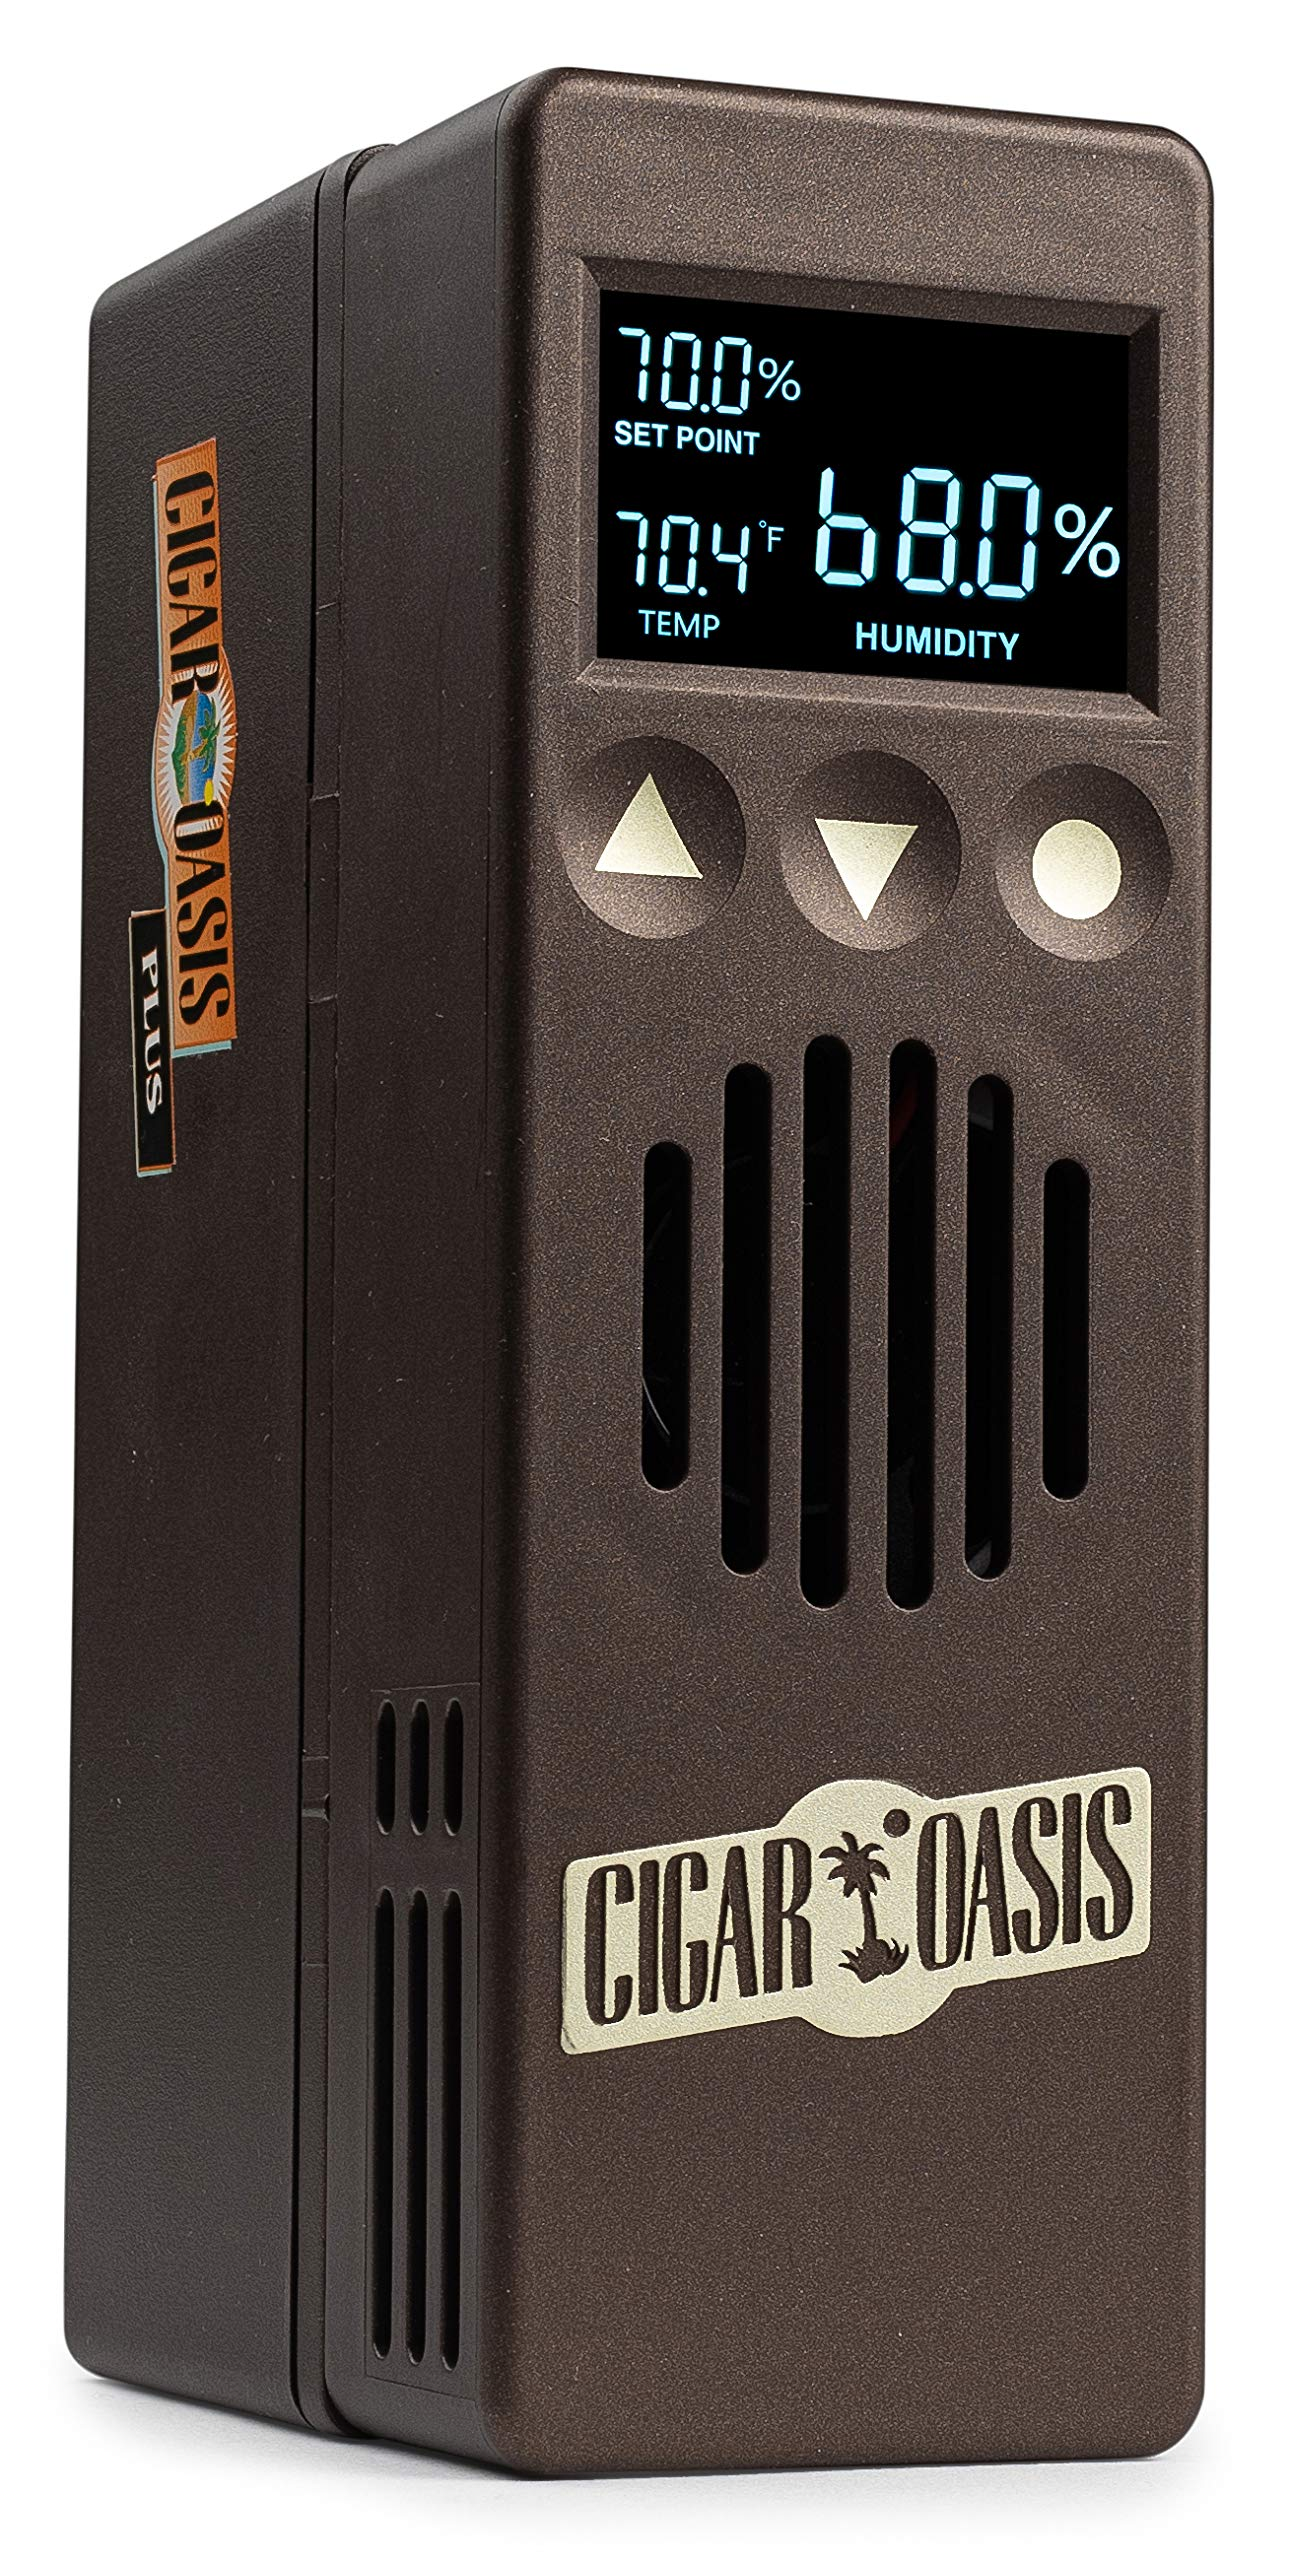 Cigar Oasis Plus 3.0 Electronic Humidifier for end-table humidors 4-10 cubic feet (300-1000 cigar capacity)